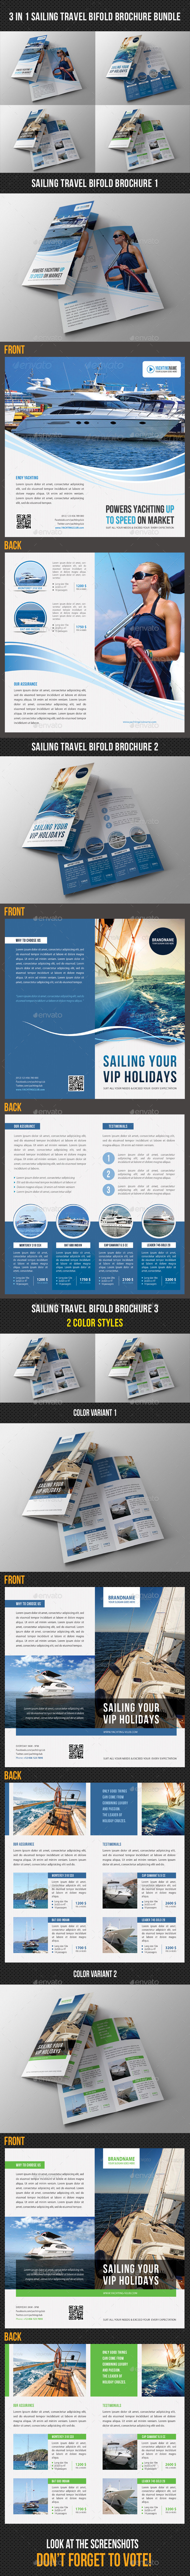 GraphicRiver 3 in 1 Sailing Travel Bifold Brochure Bundle 8897717